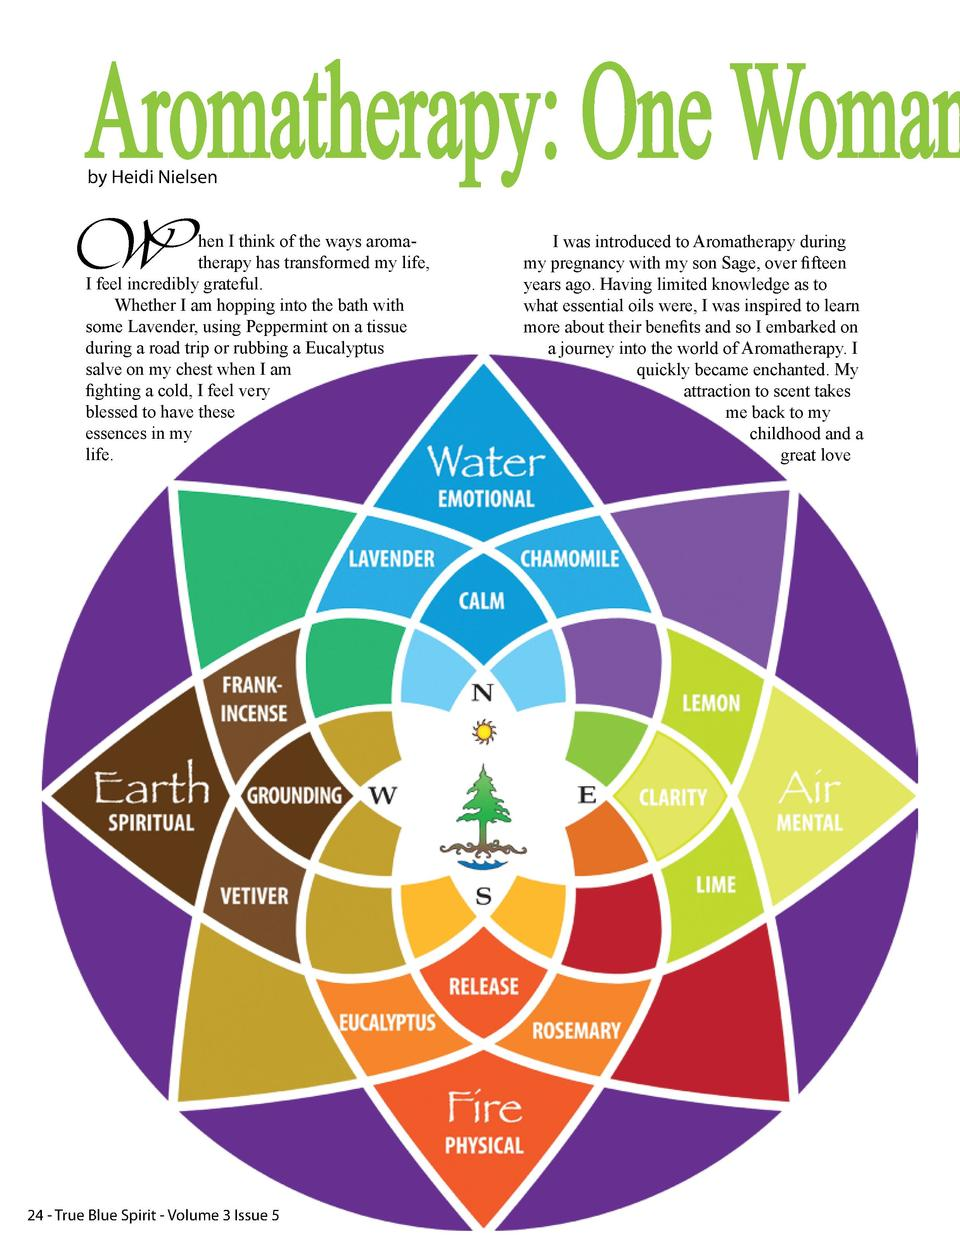 Aromatherapy  One Woman by Heidi Nielsen  W  hen I think of the ways aromatherapy has transformed my life, I feel incredib...